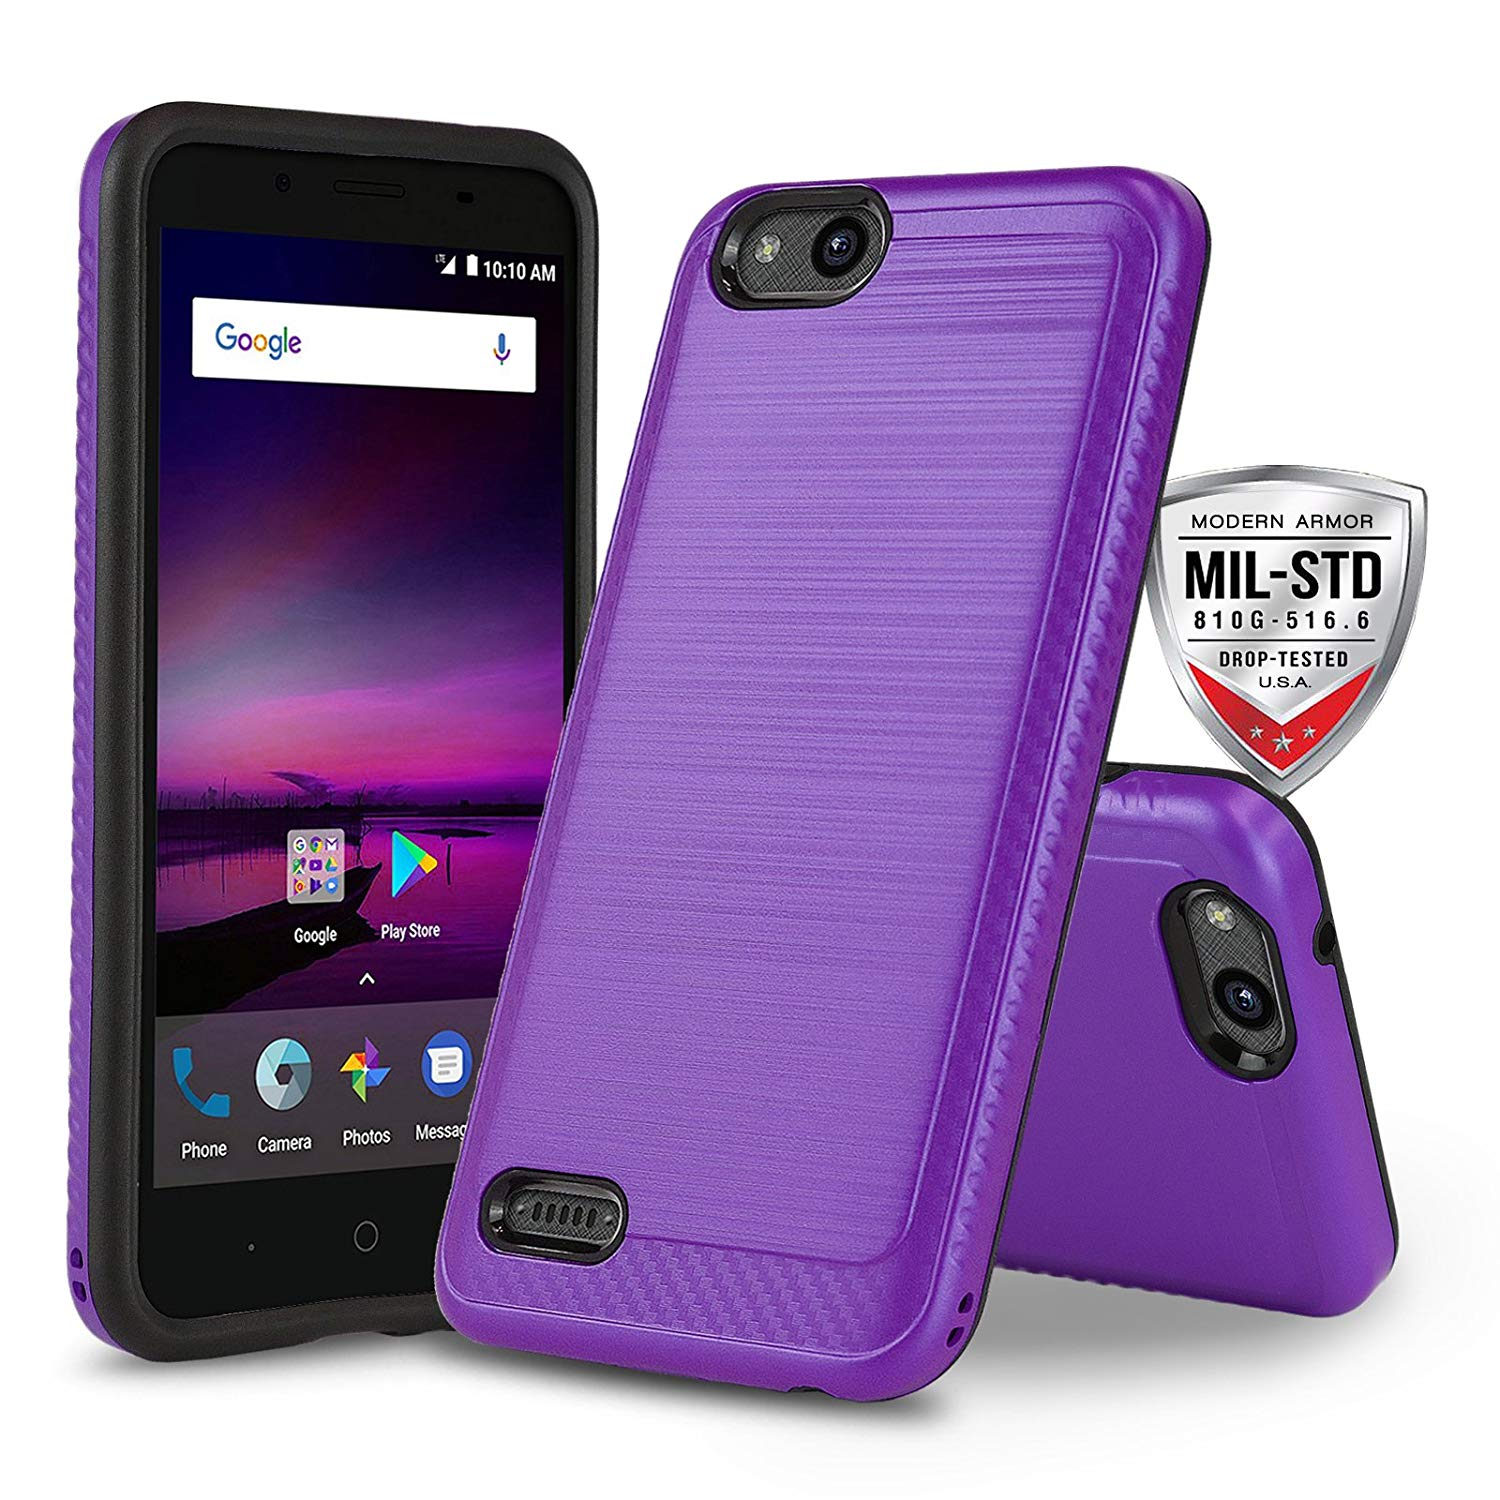 [ZTE ZFive G LTE][ZTE ZFive C LTE] Case, CaselandUSA [Modern Series][Purple] Shockproof [Defender] Hybrid Dual Layer [Impact Resistant] Phone Cover for ZTE ZFive G LTE, ZFive C LTE